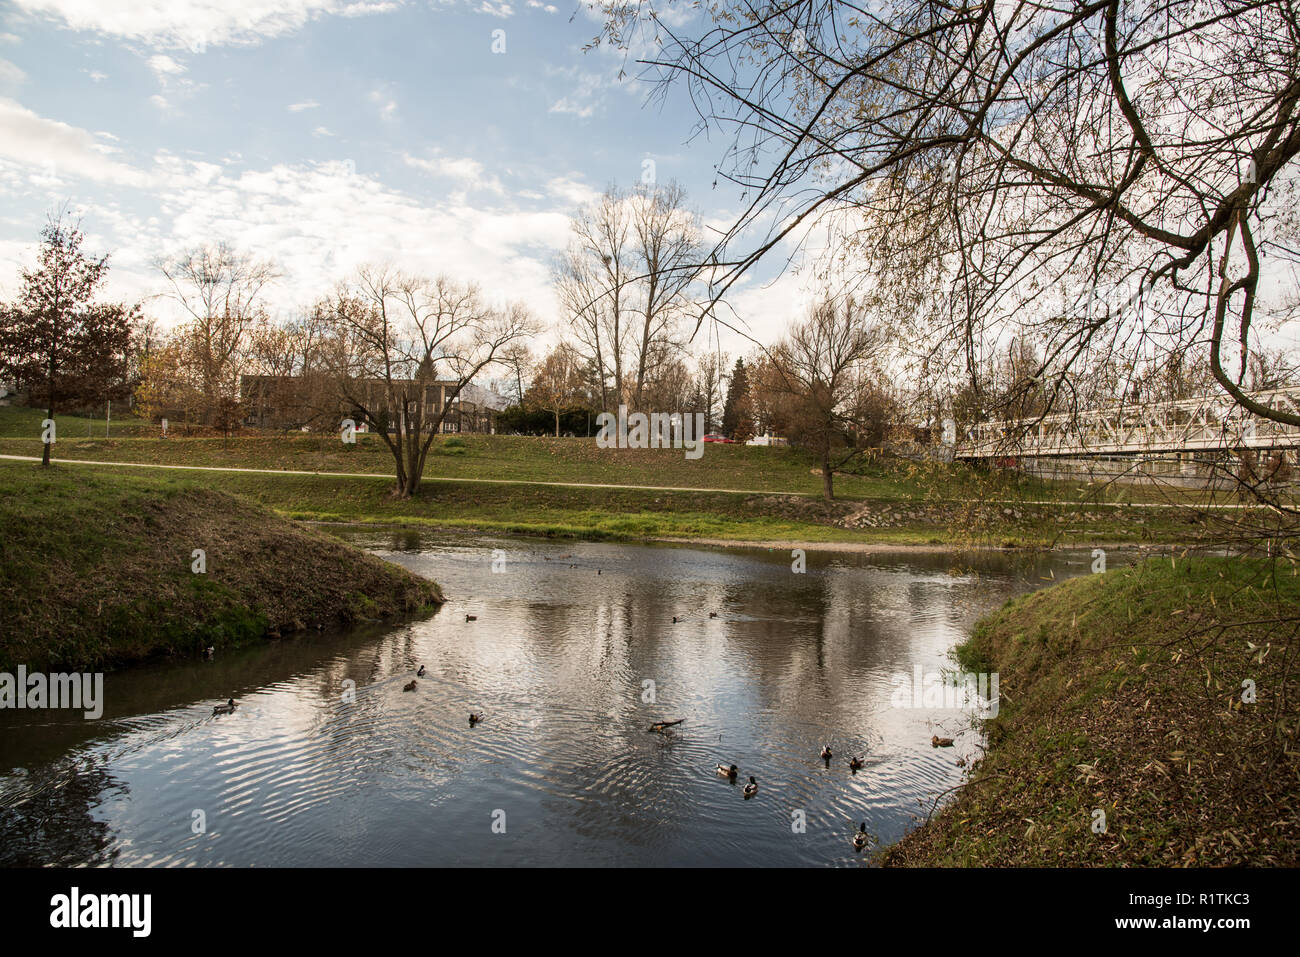 tributary of Lucina and Ostravice rivers near Slezskoostravsky hrad castle in Ostrava city in Czech republic during autumn day with blue sky and cloud - Stock Image